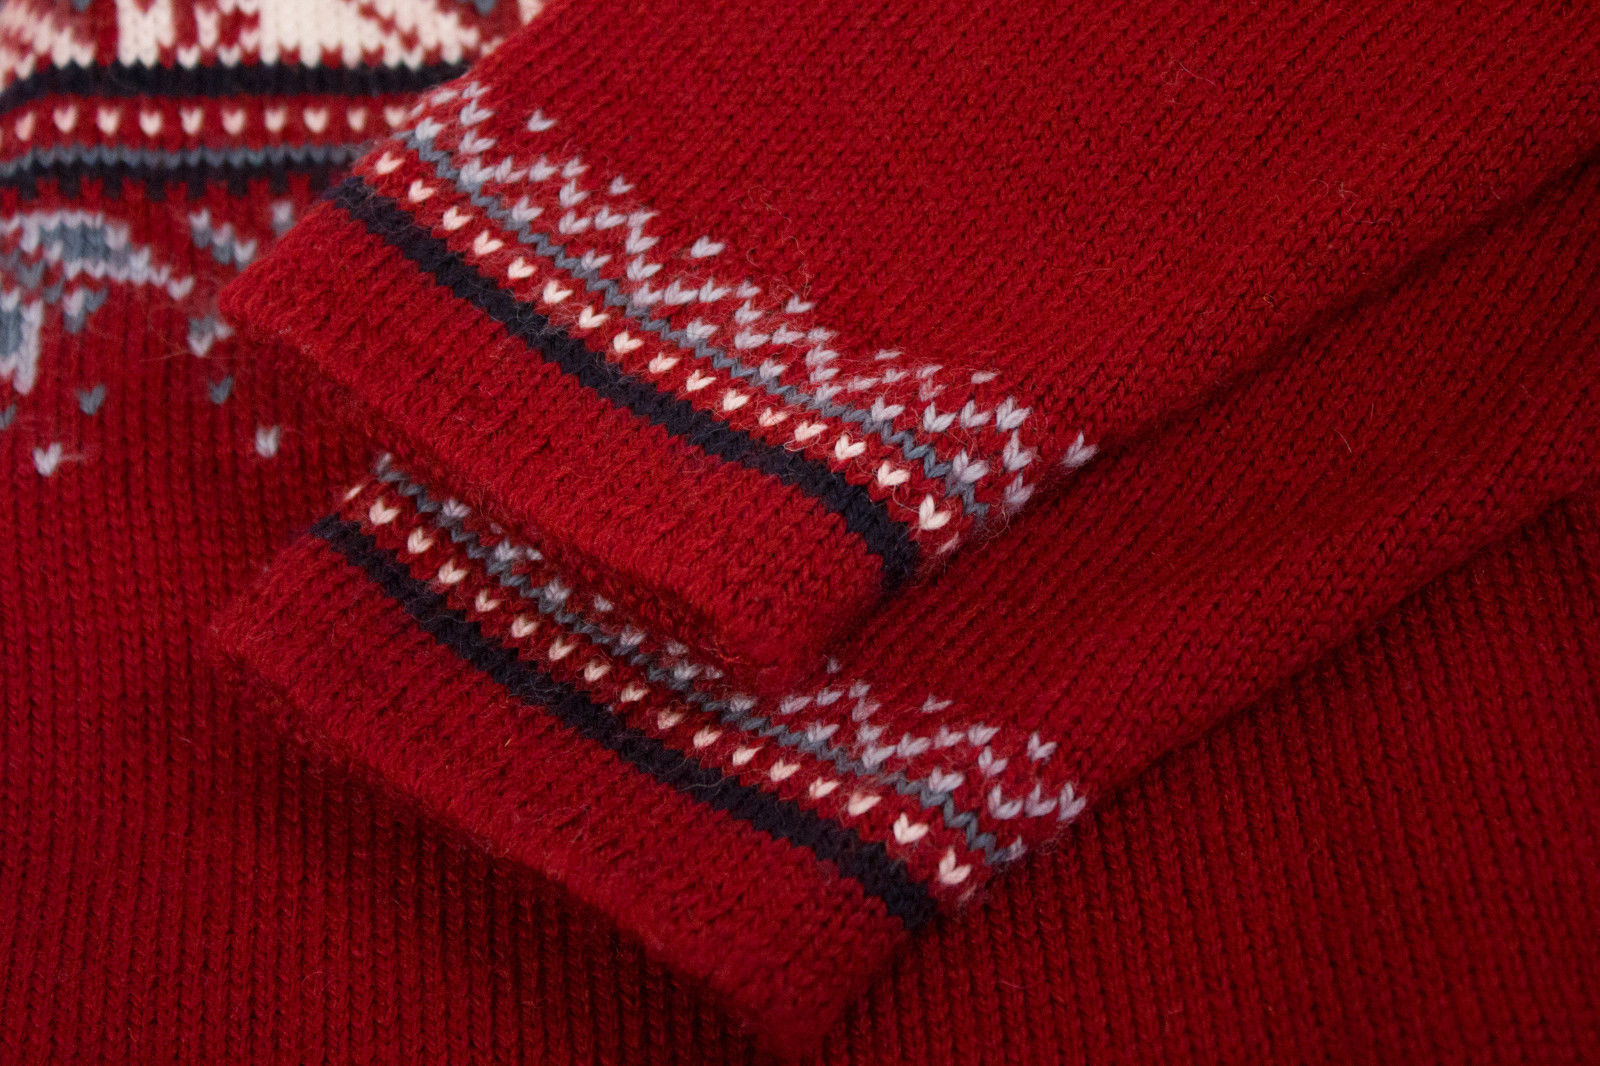 DALE OF NORWAY Kid's Zip Neck Warm Wool Sweater Jumper Pullover Size 10 - secondfirst